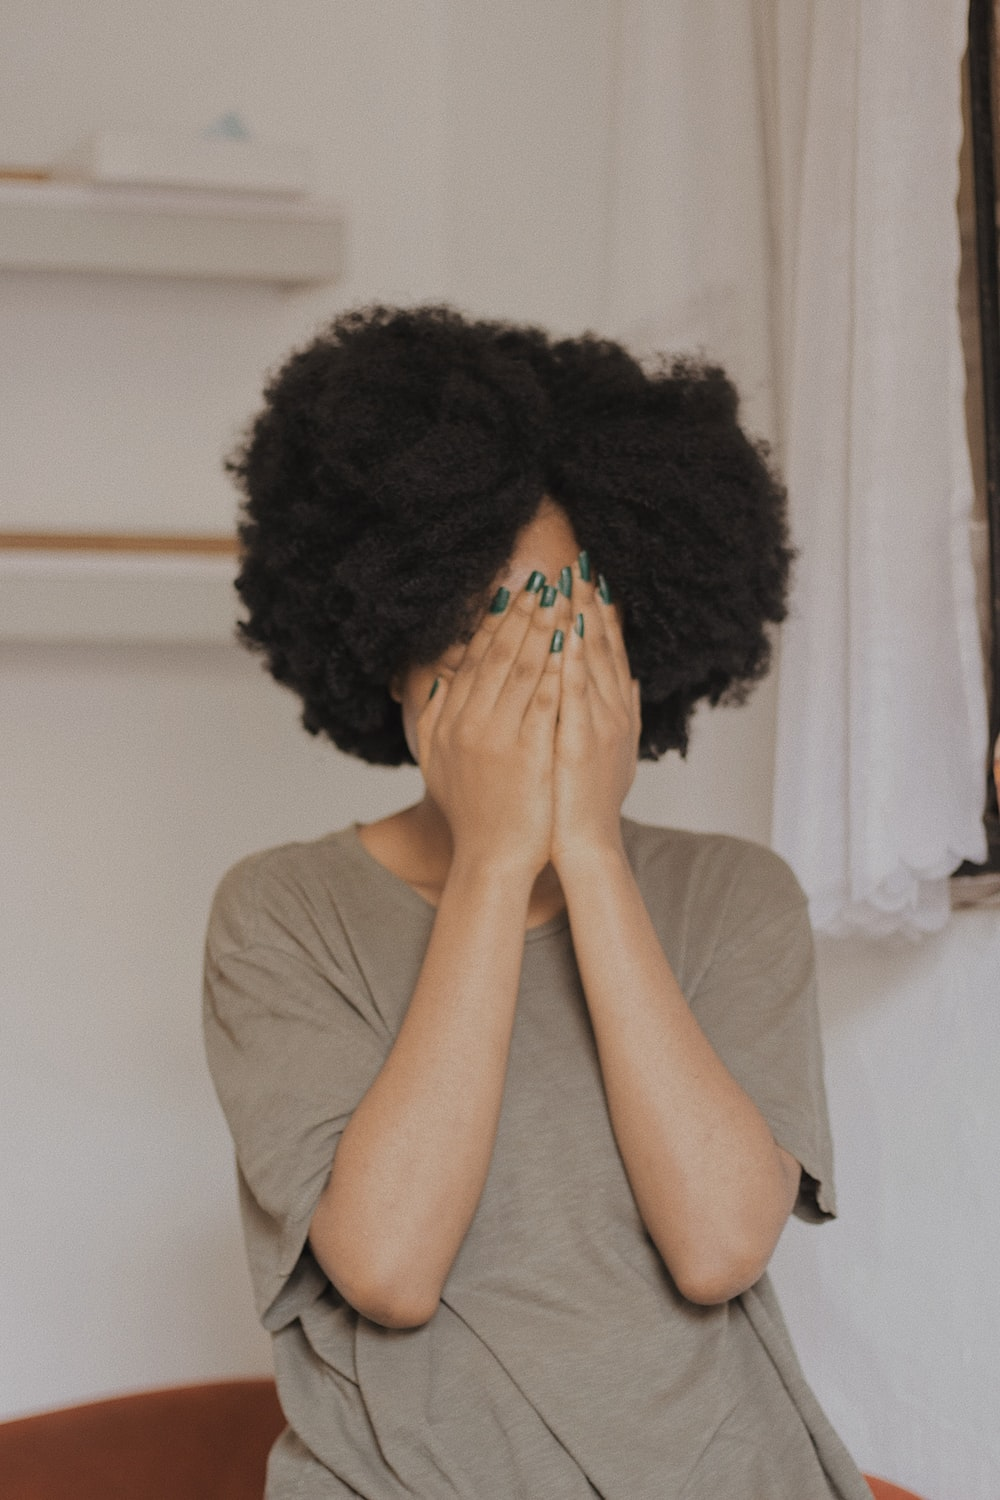 woman in gray t-shirt covering face with both hands